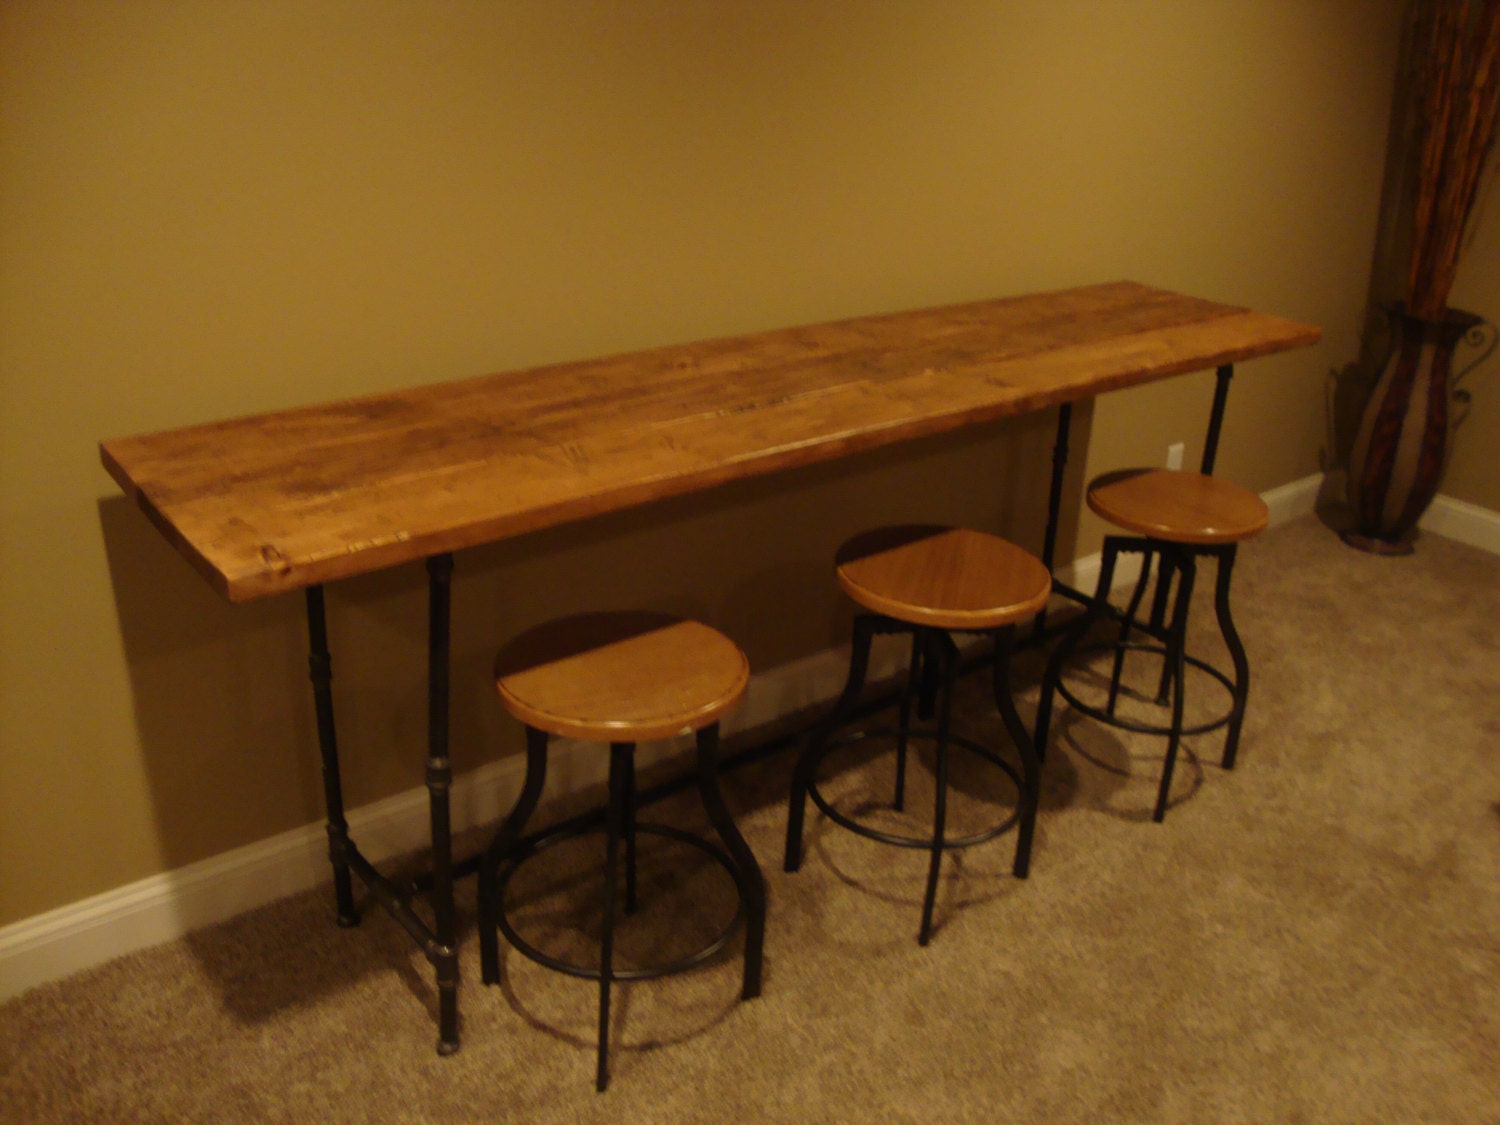 Counter Height Reclaimed Wood Table : ... similar to Reclaimed Wood Black Pipe CounterHeight Table/Bar on Etsy